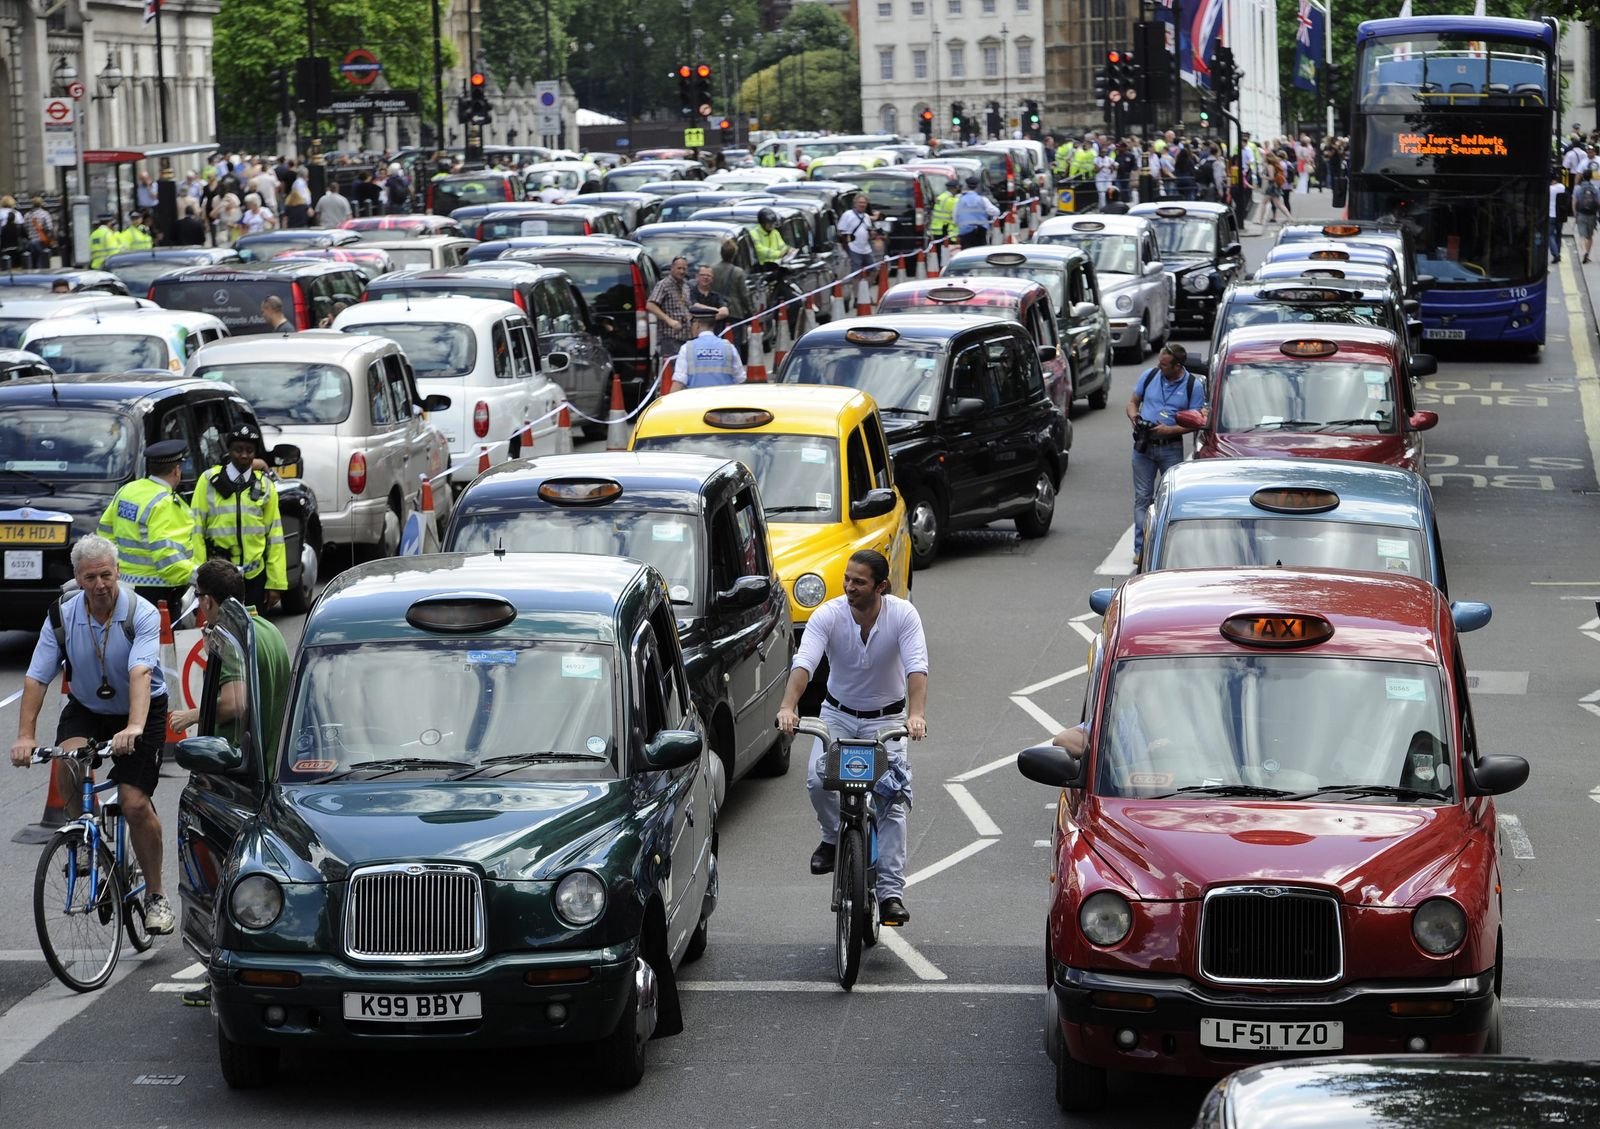 Taxi-Protest in London